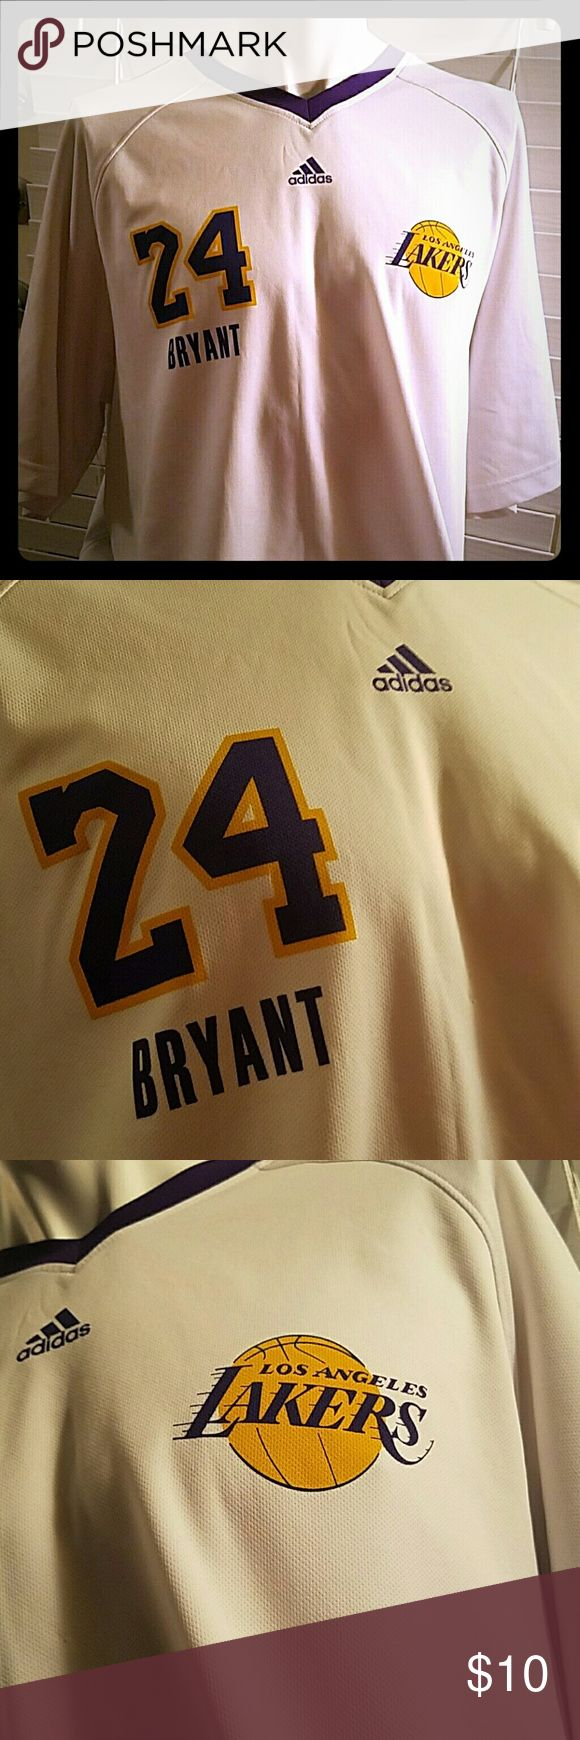 Kobe Bryant Lakers Jersey T White, purple, yellow Kobe Bryan Lakers Jersy T shiet. Gently worn. Snall snag on front, barely noticeable. Still an amazing shirt, with lots of life left adidas Tops